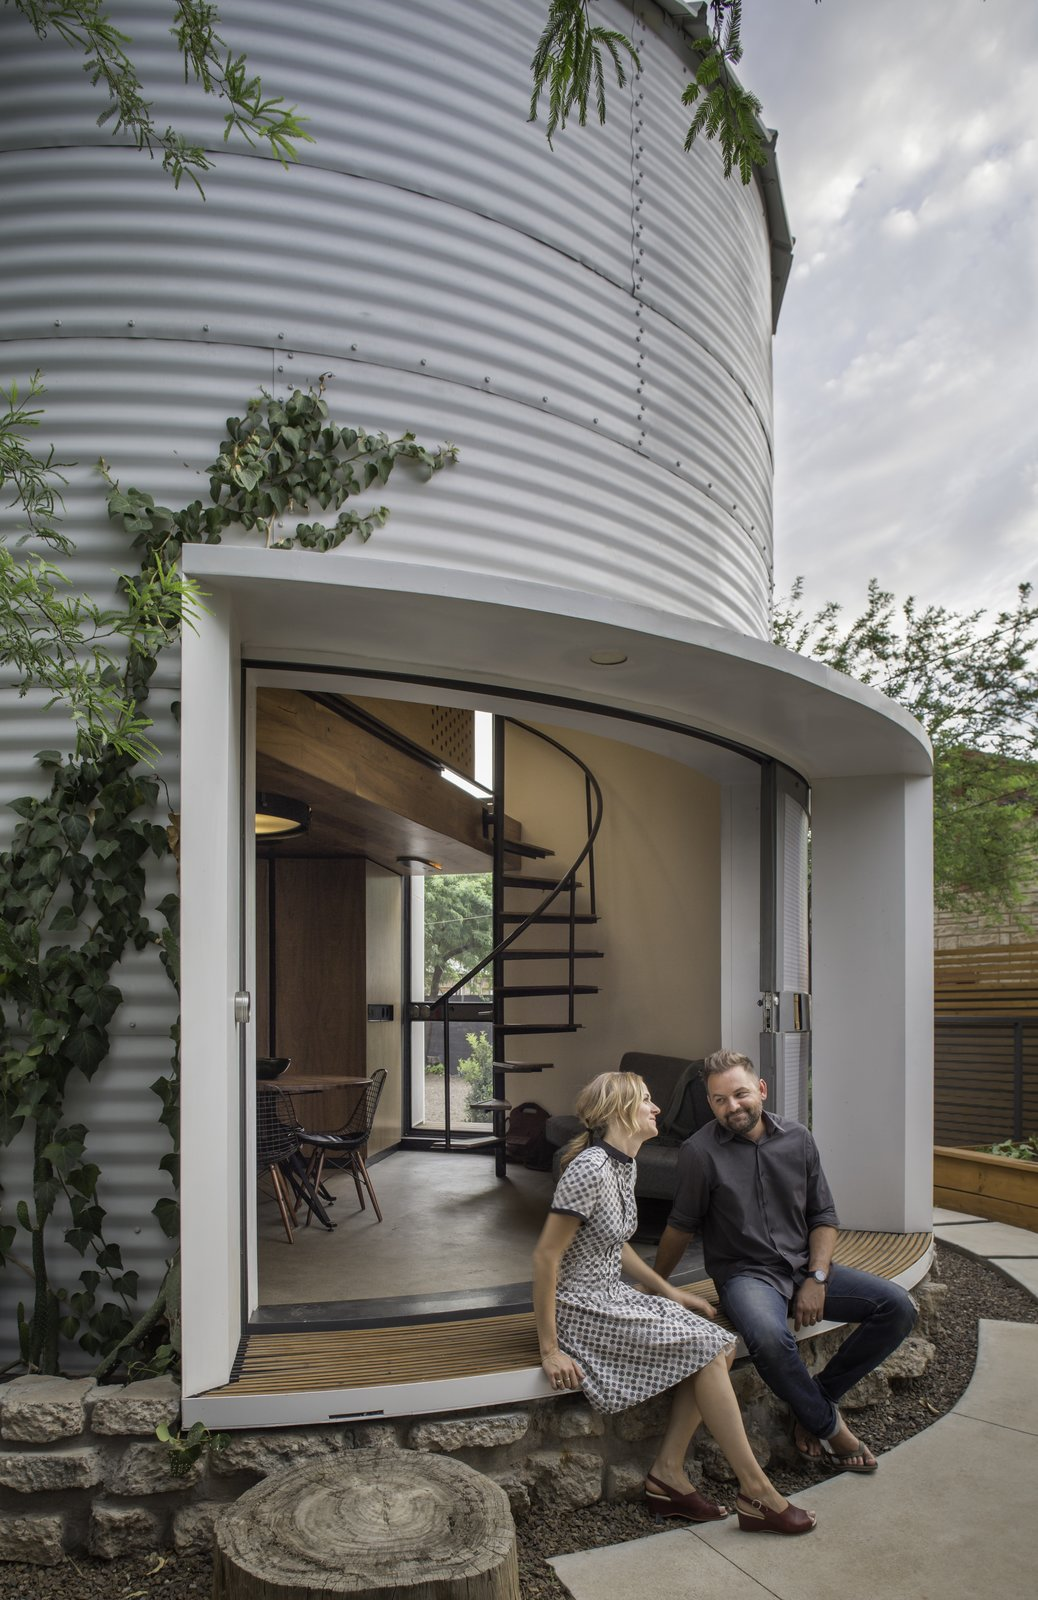 "Outdoor, Gardens, Side Yard, Wood, Walkways, Back Yard, Horizontal, Concrete, and Hanging Christoph Kaiser, principal at Kaiserworks, reimagined a 1955 grain silo as a 340-square-foot home in Phoenix, Arizona. The corrugated, steel-clad house is 18 feet in diameter and features a 26-foot-high ceiling and a 17-foot operable slot window that fames views of the city. While the exterior displays a wonderfully industrial aesthetic, the interior is surprisingly cozy. ""I wanted a warm interior, almost if you designed Wurlitzer to tend to all human needs and then slid it into one cylinder,"" says Kaiser, who employed built-in furniture, a spiral staircase, and a mezzanine bedroom with an in-wall projector for the ideal movie-watching experience.  Outdoor Side Yard Concrete Walkways Gardens Photos from An Old Grain Silo Makes an Enchanting Tiny Home in Phoenix"